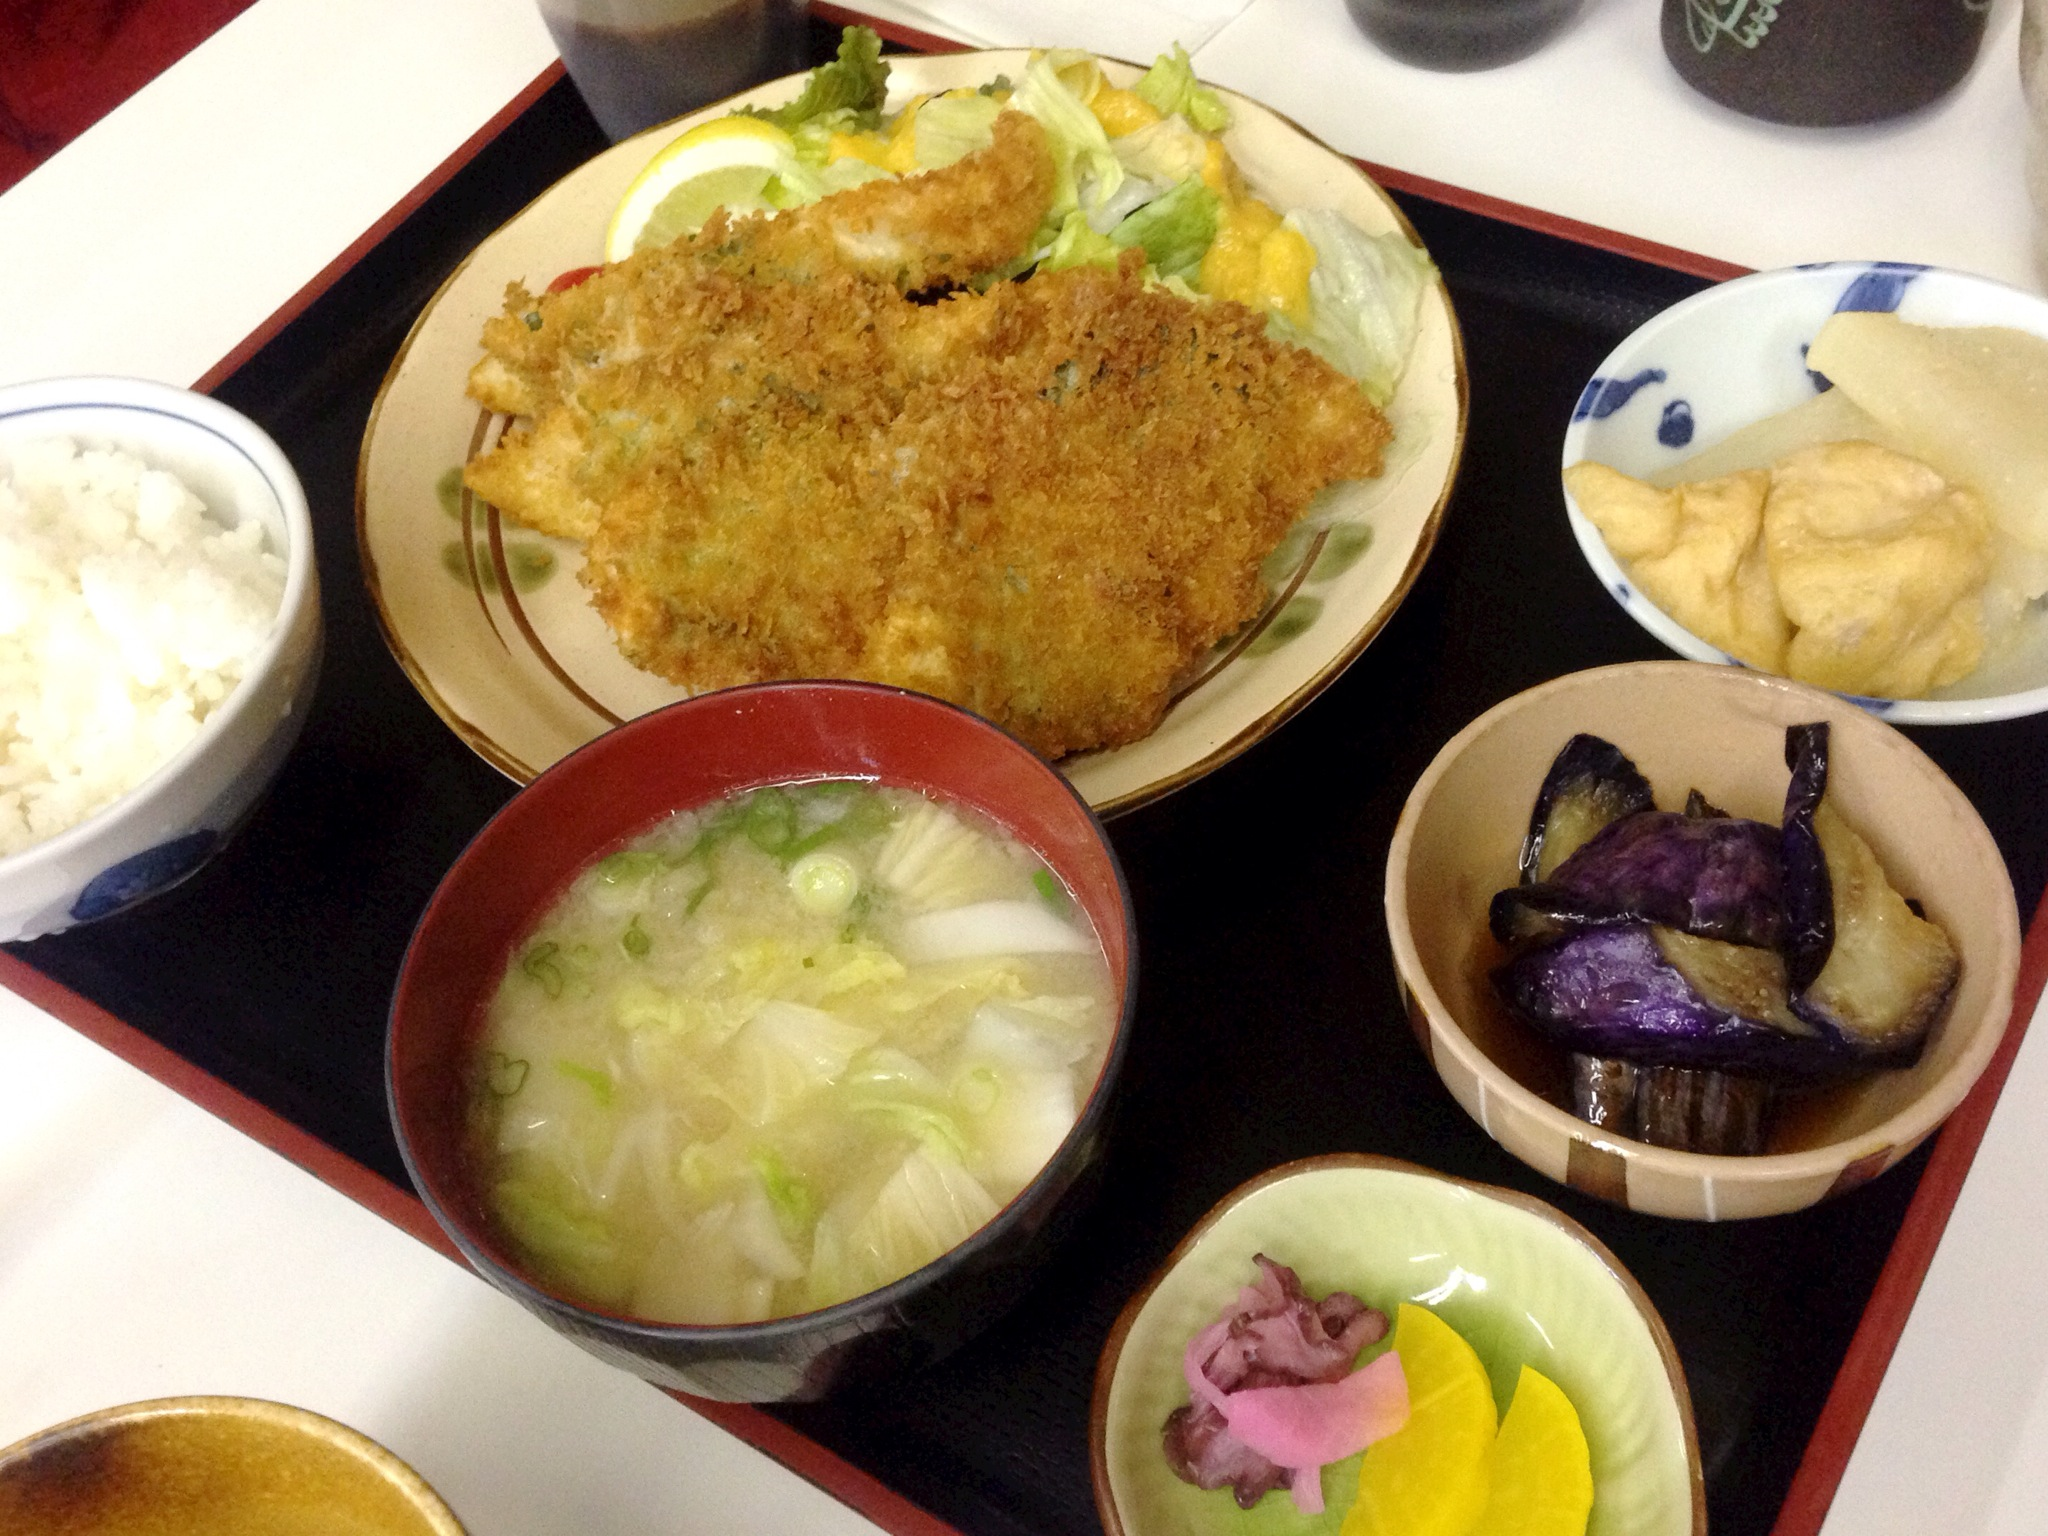 Teishouku - Breaded Deep Fried White Fish with Shiso Leaf @ Aotoya Blue Door